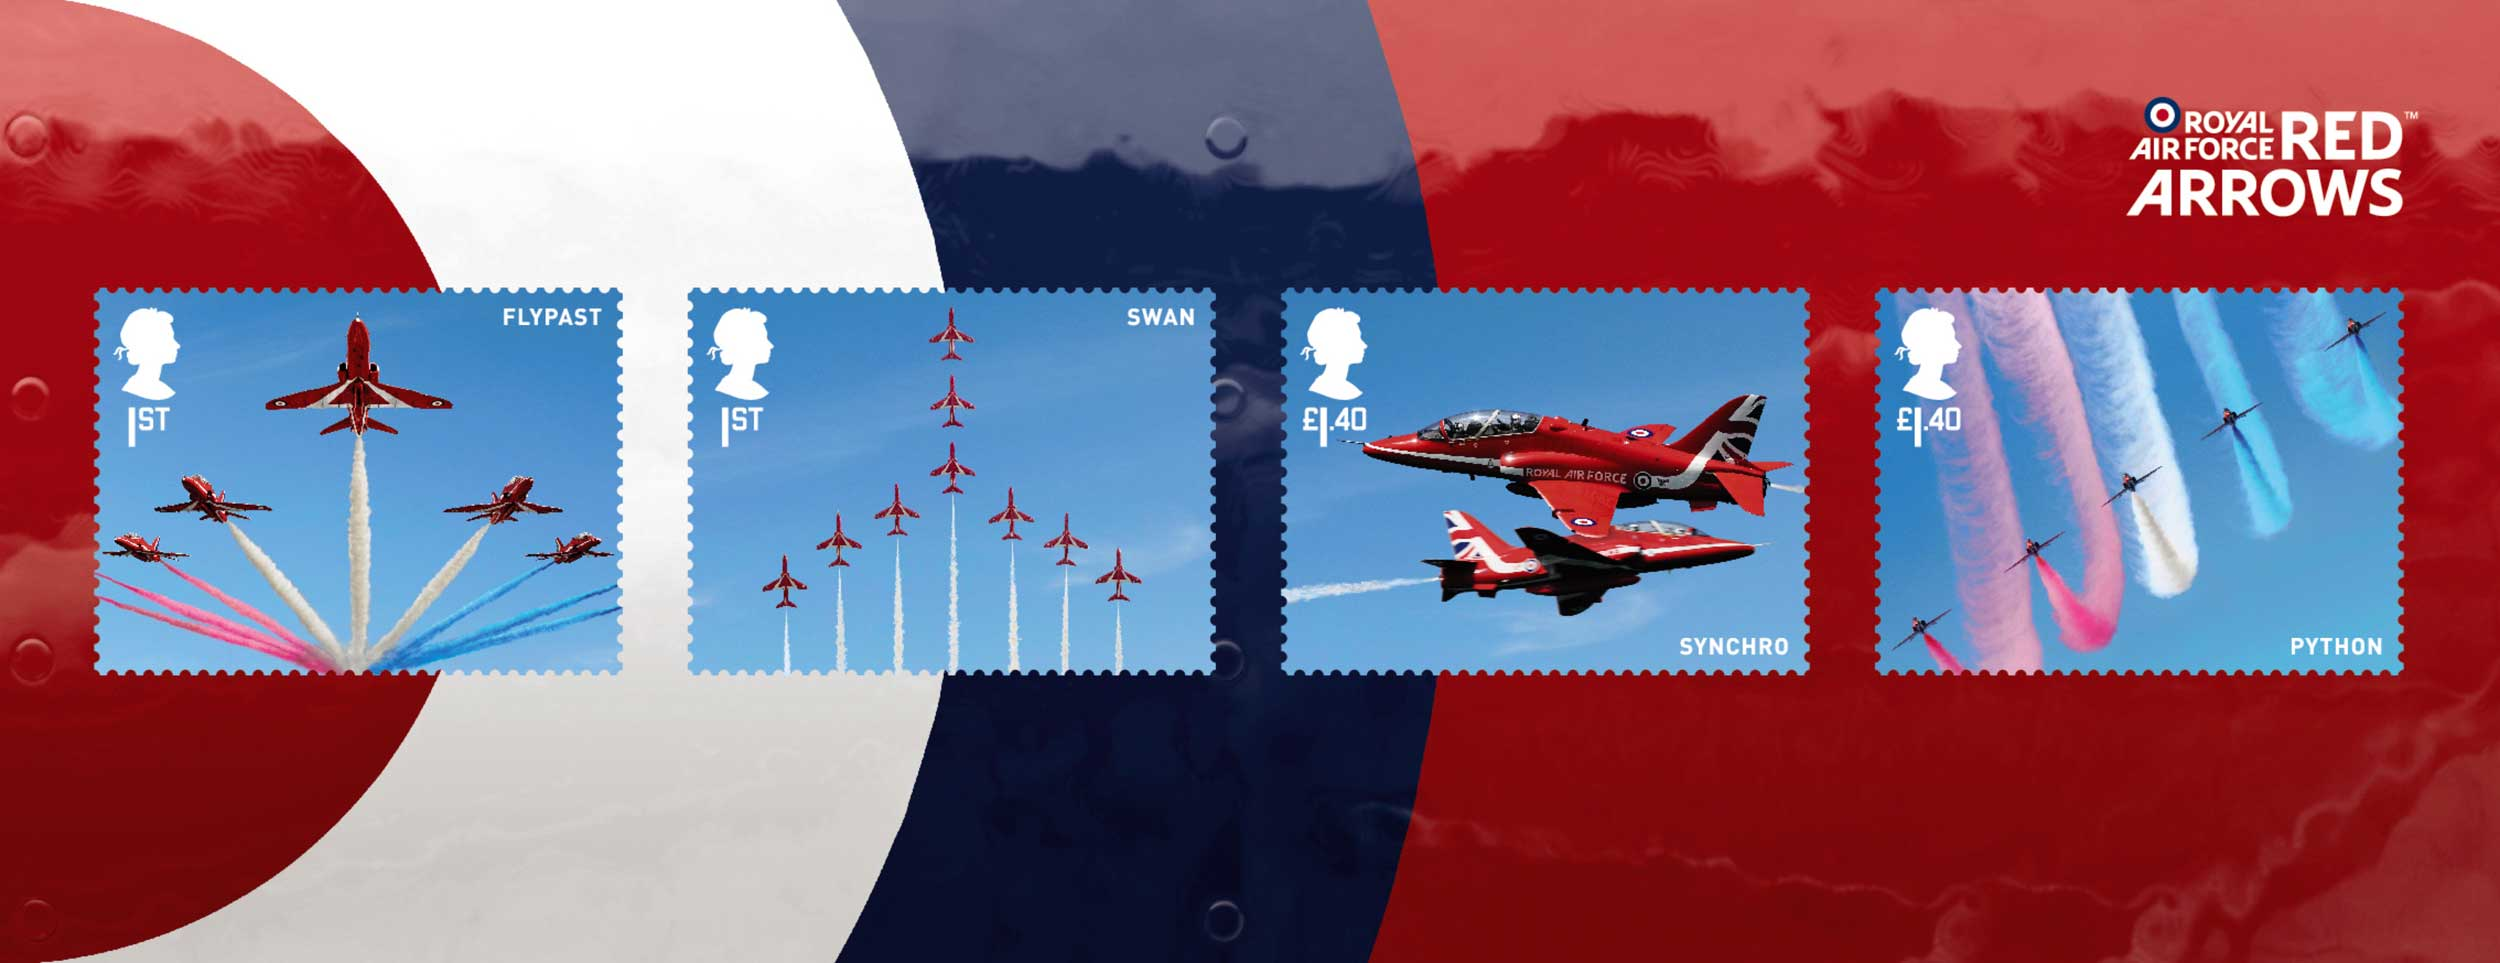 Raf 100 Celebrated In Stamps And Coins Flyer